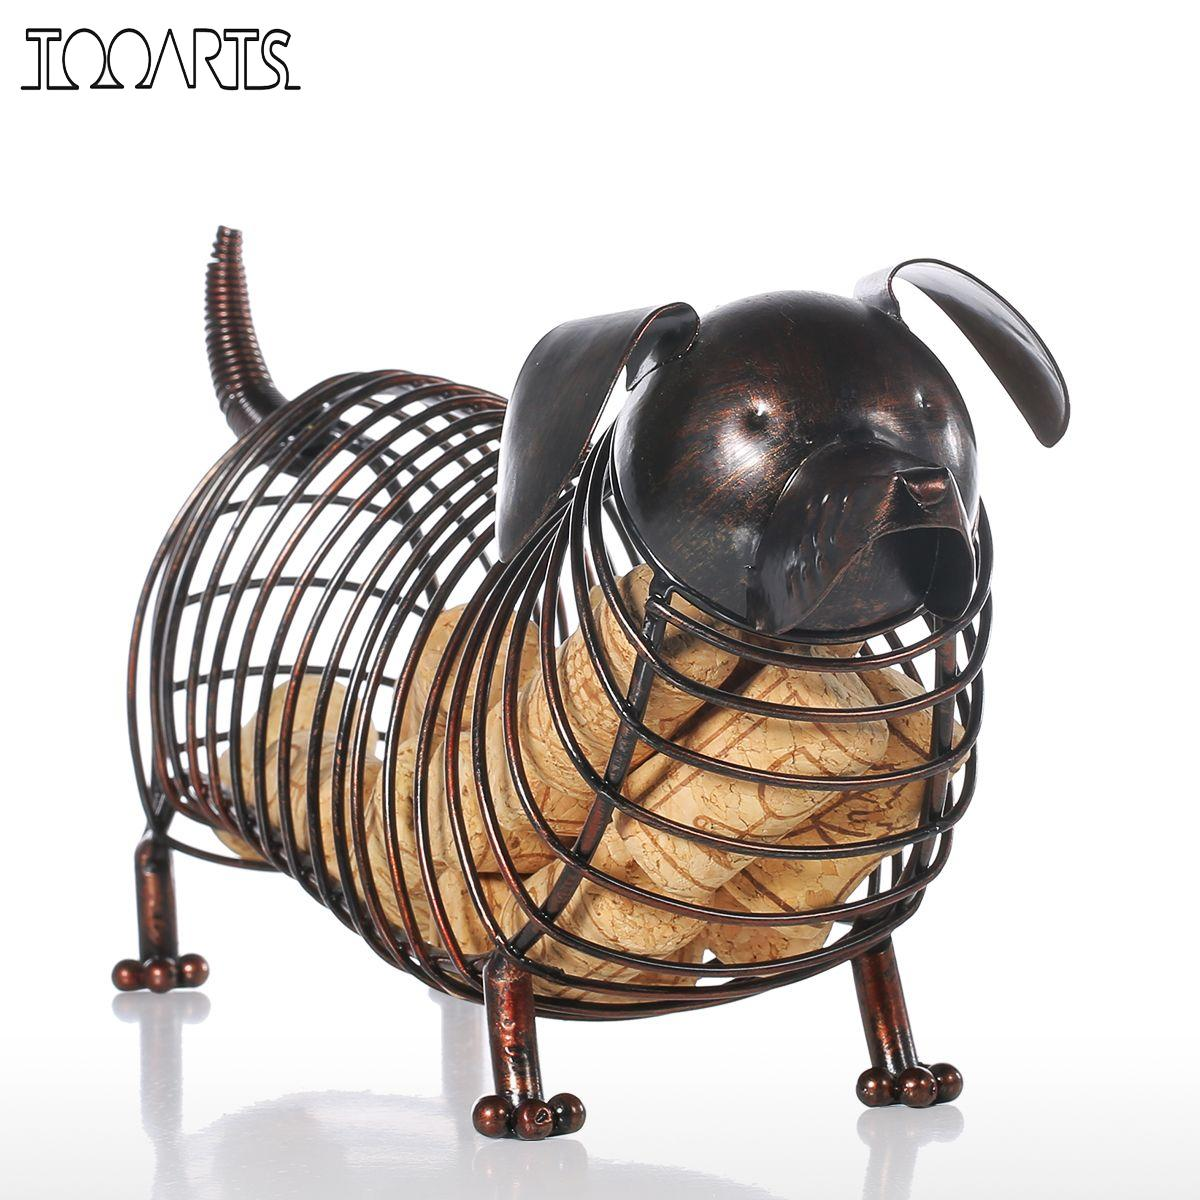 Tooarts Metal Animal Figurines Dachshund Wine Cork Container Moderne Kunstig Iron Craft Hjemmeindretning Tilbehør Gave